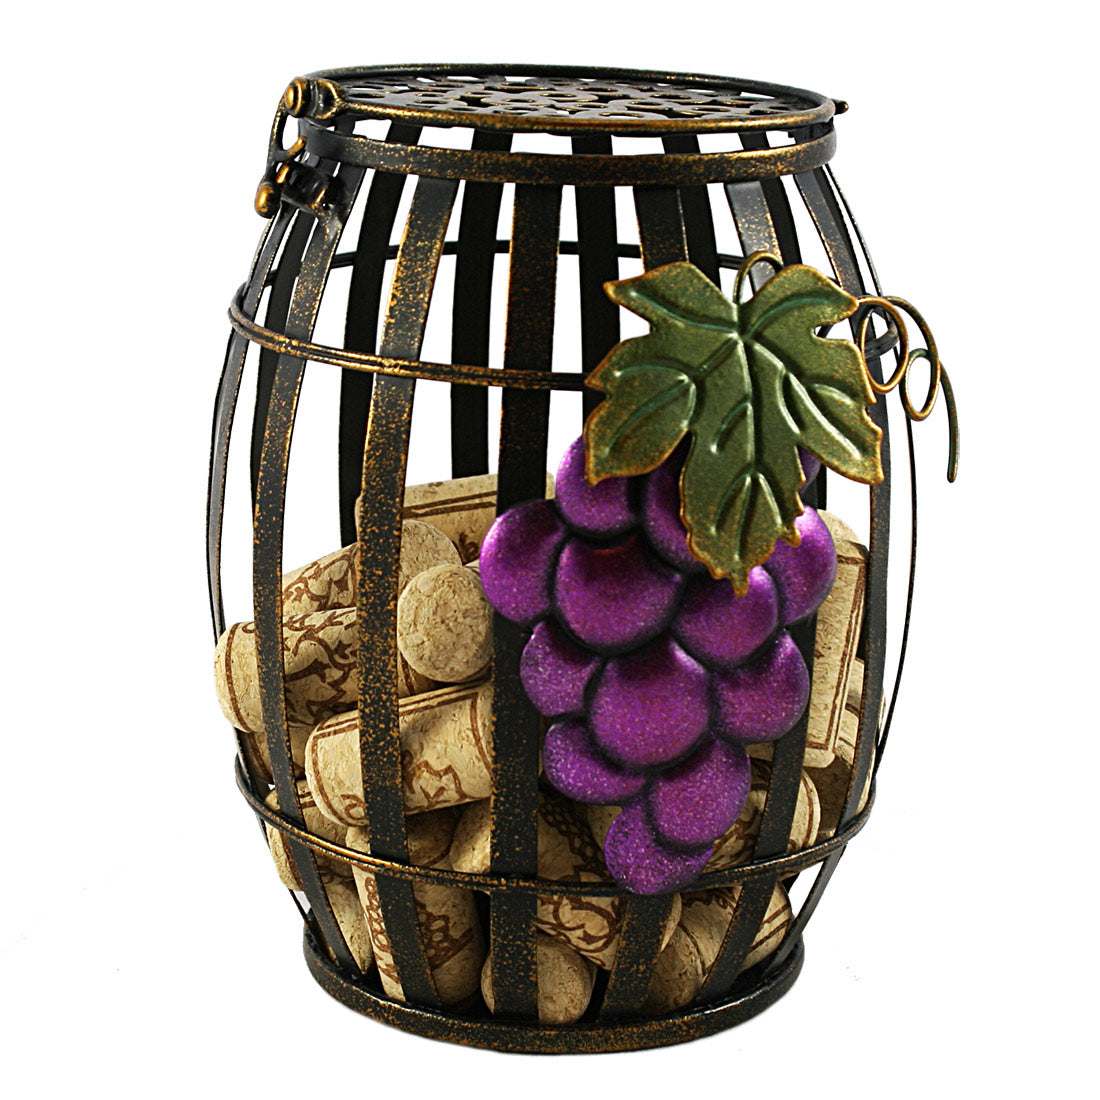 Vintage Wine Barrel Cork Holder